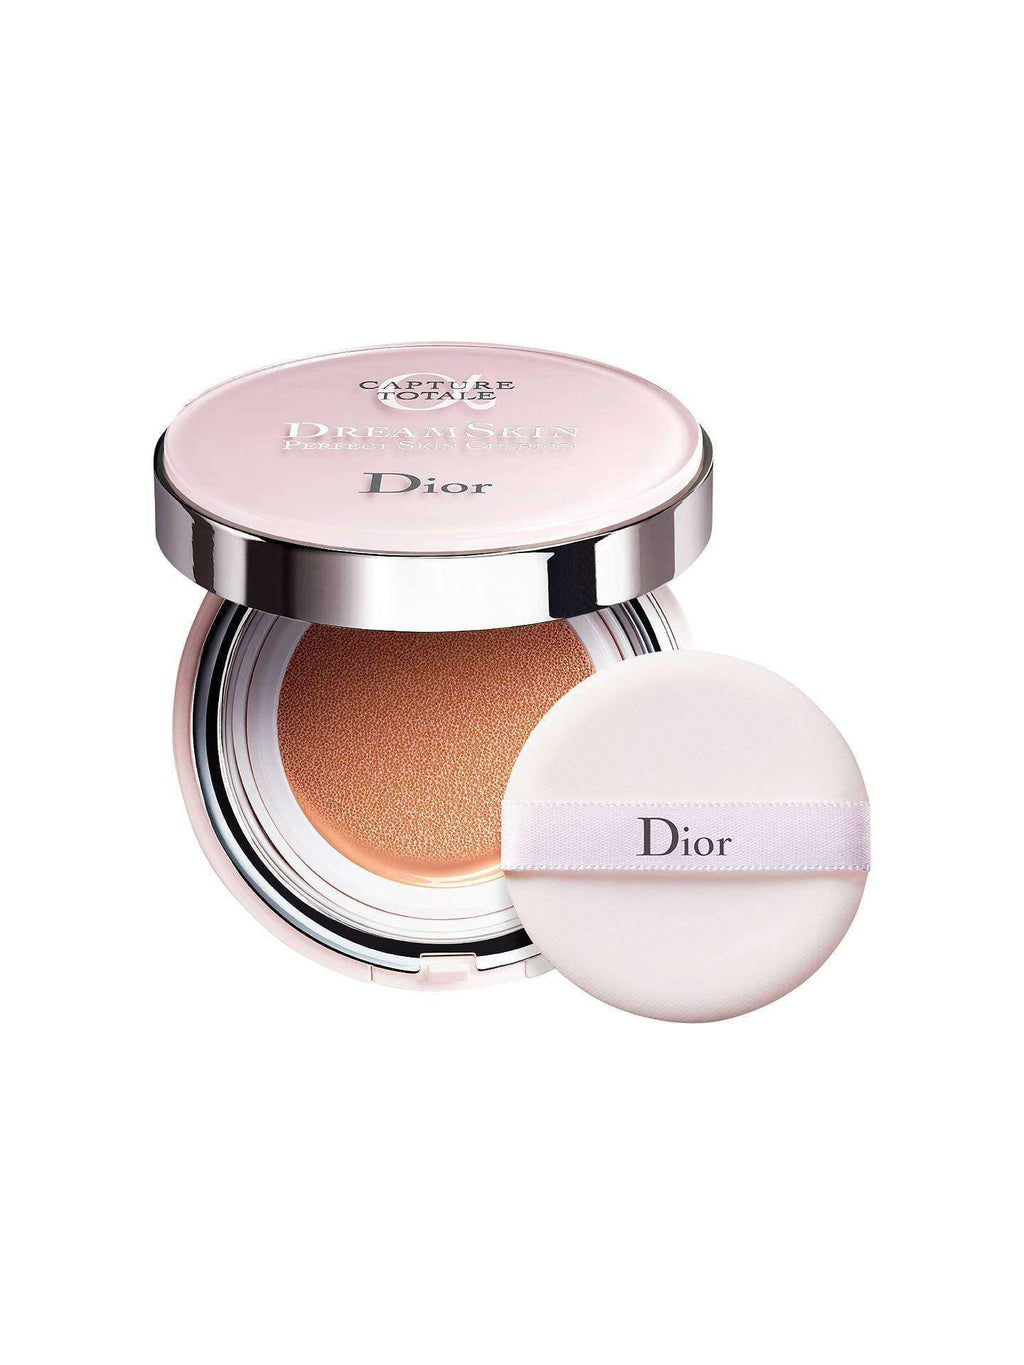 DIOR CAPTURE TOTALE DREAMSKIN-PERFECT SKIN CUSHION